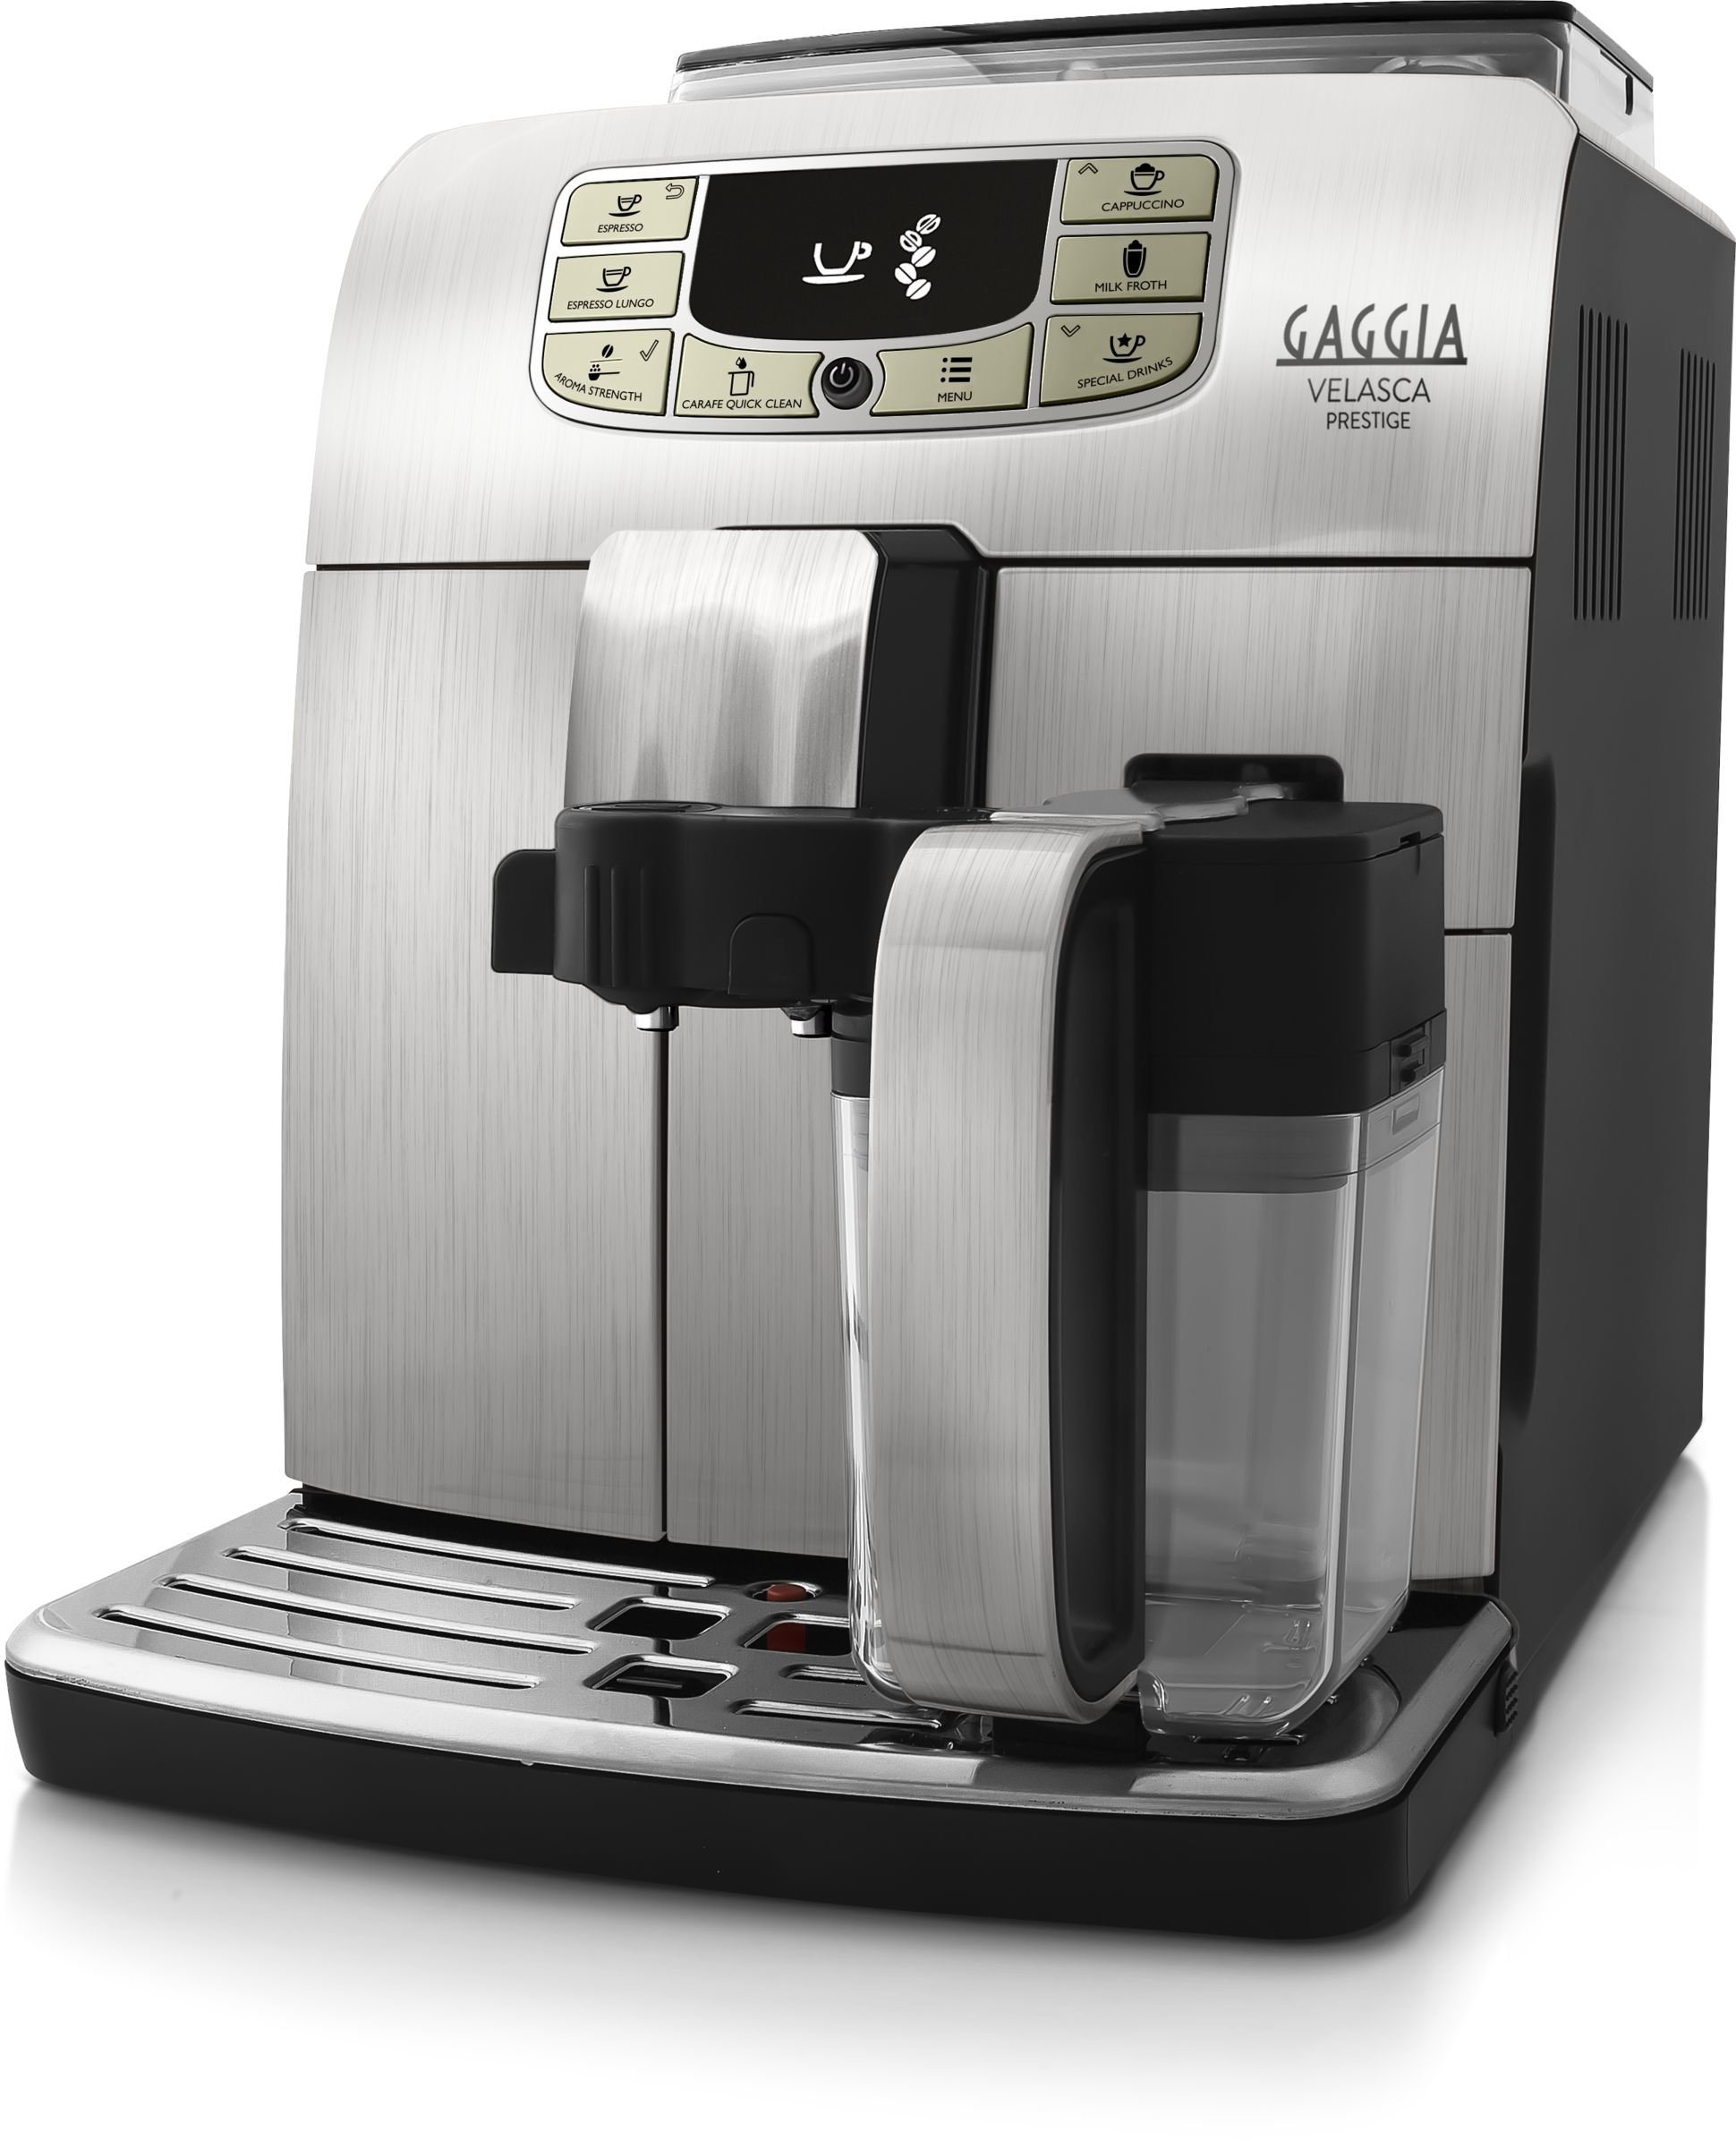 RI826301-Velasca-Prestige-Gaggia-Coffee-Machine